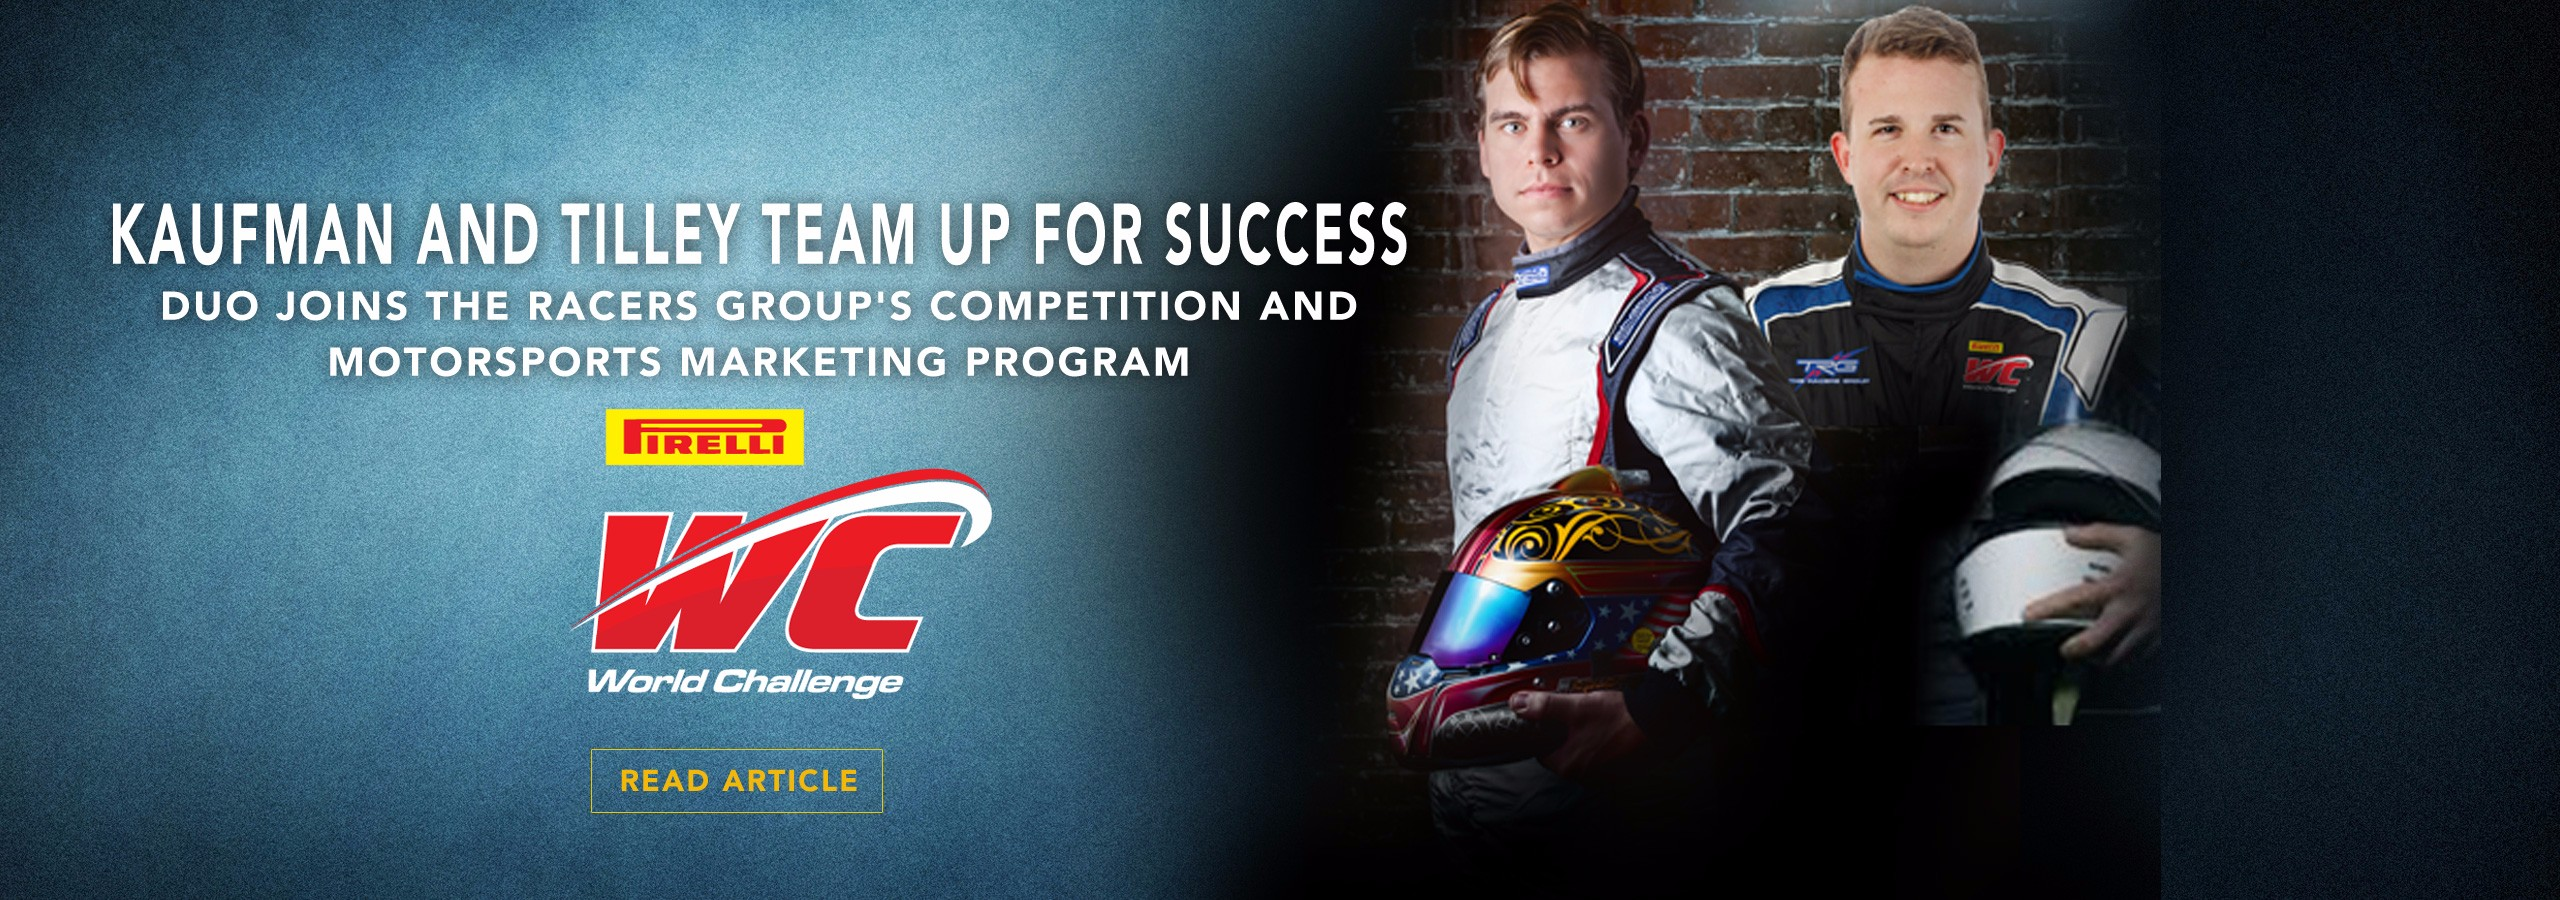 Kaufman and Tilley Team Up for Success Duo Joins The Racers Group's Competition and Motorsports Marketing Program